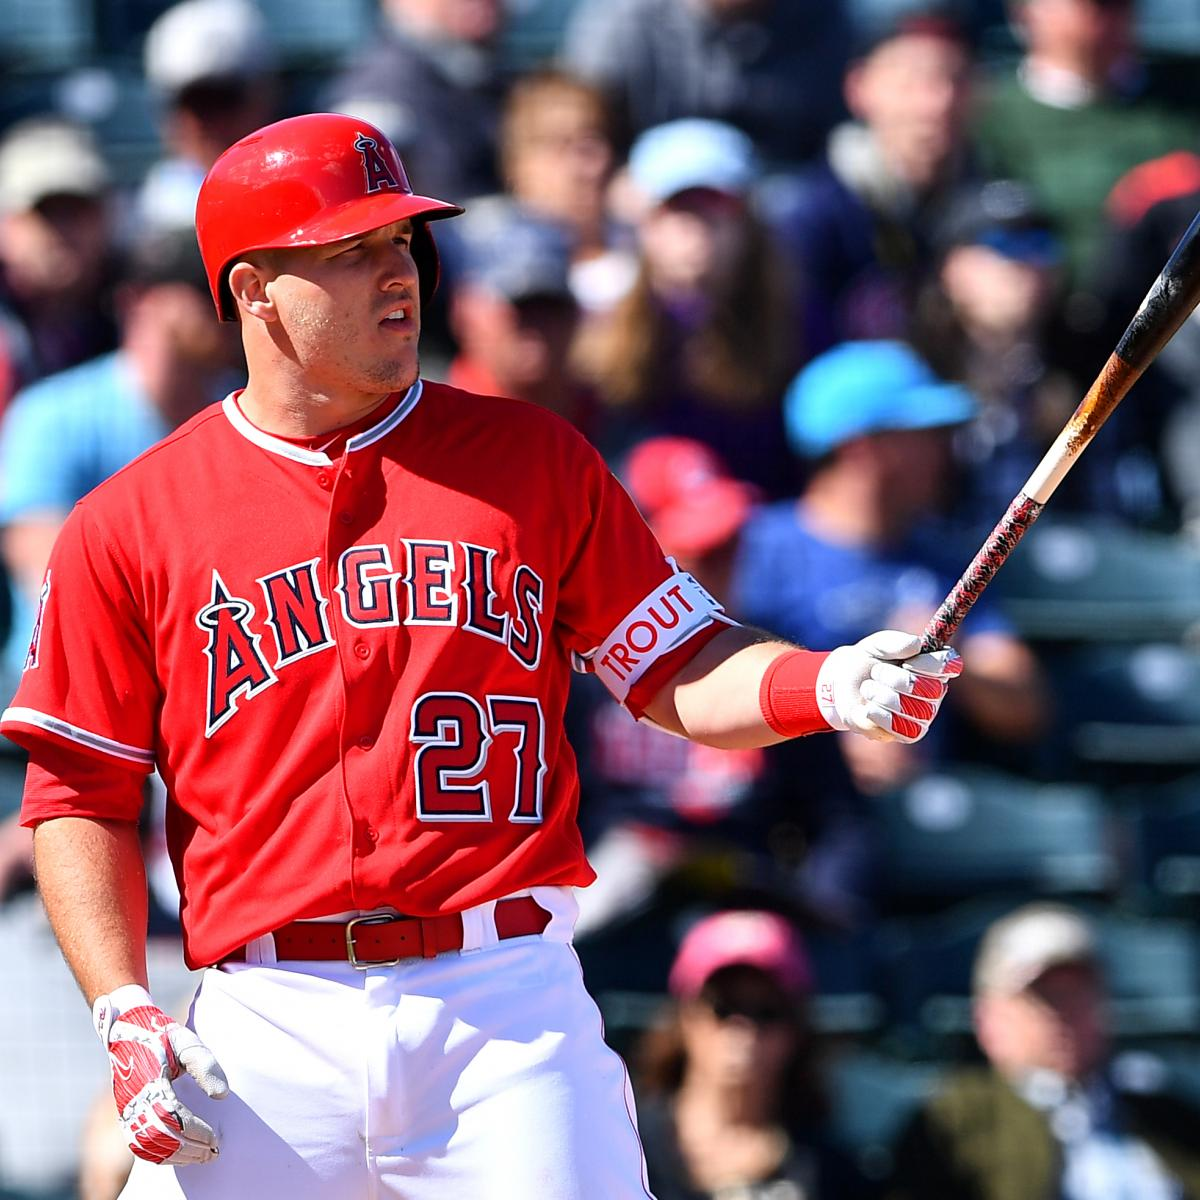 Mike Trout's About To Get Even More Unstoppable After